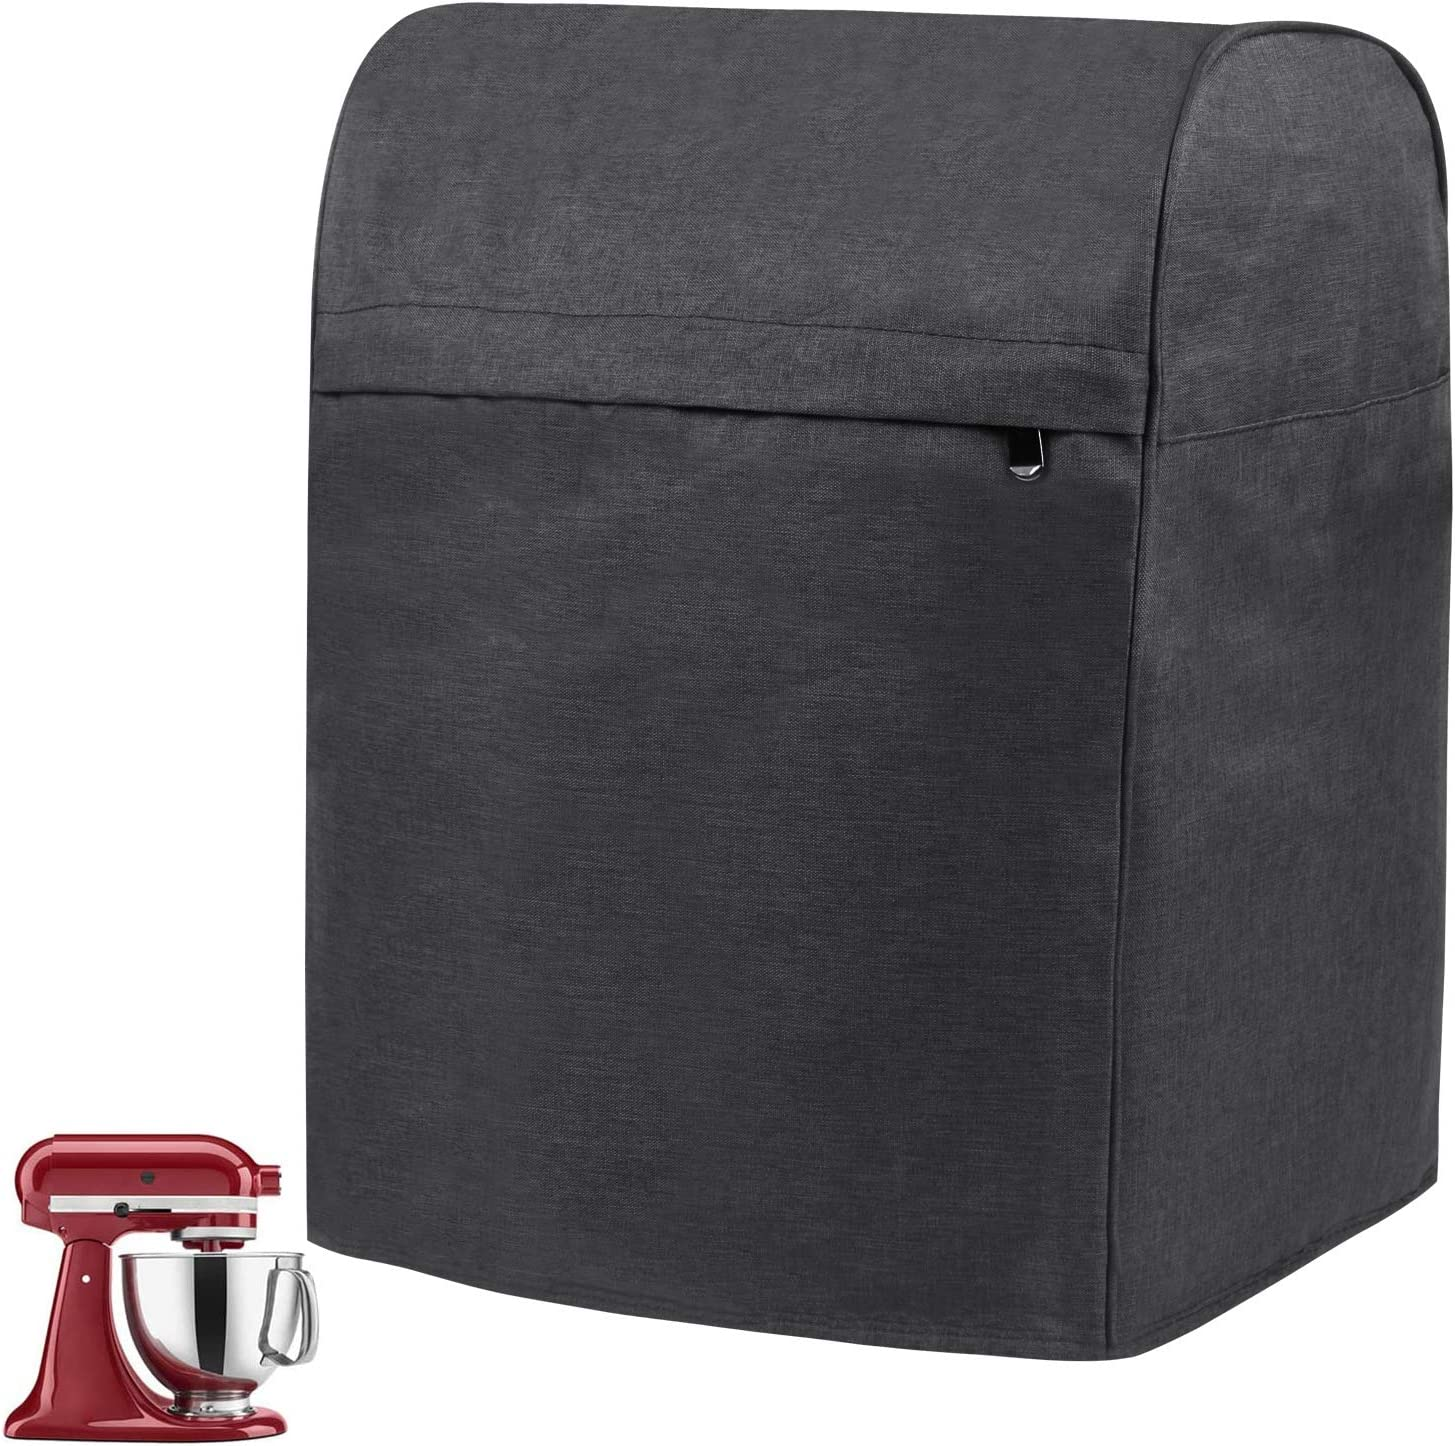 EVERMARKET Stand Mixer Cover for 6-8 Quart KitchenAid Mixer,Dust-proof Cover Cloth Dust Cover with Pocket for Extra Attachments Accessories,Black